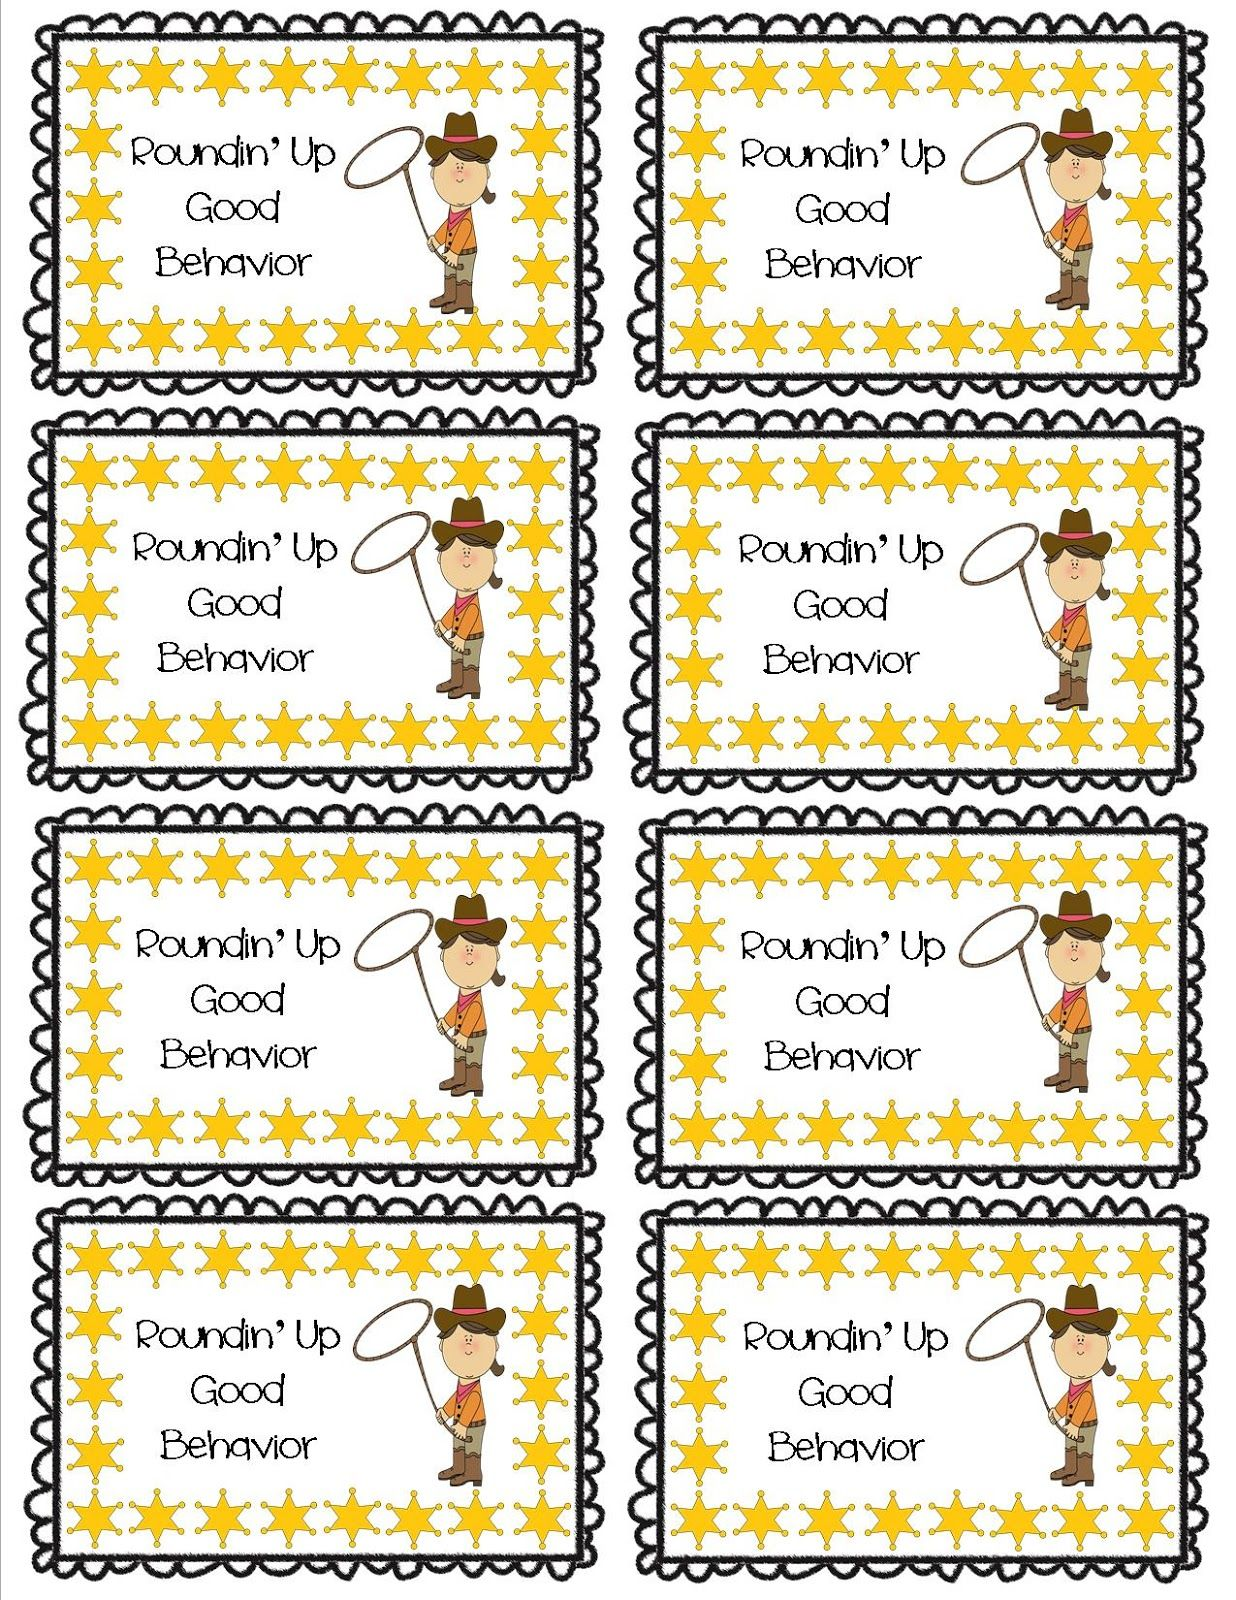 Keeping It Core Punch Cards And 2 Posts In 1 Day Giveaway Punch Cards Behavior Punch Cards Cards